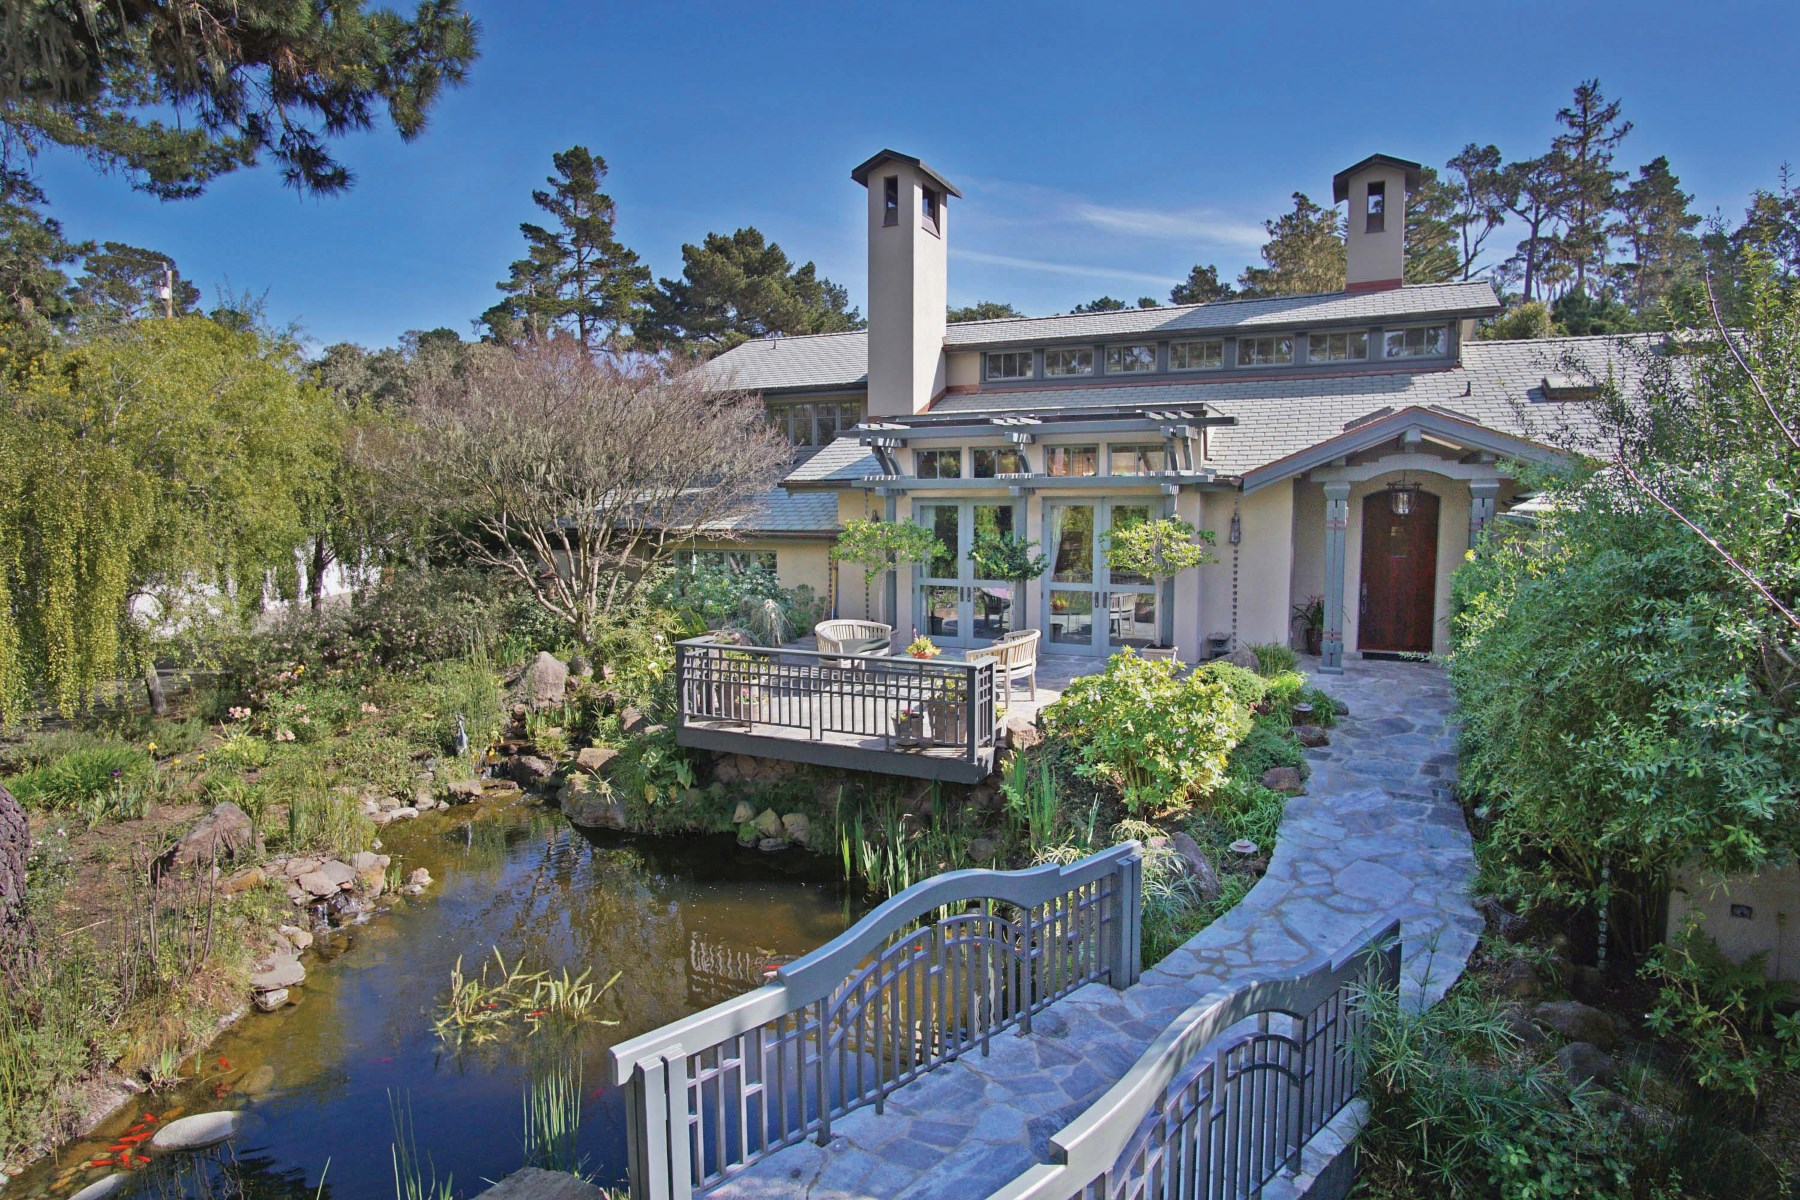 Single Family Home for Sale at Serenity in Pebble Beach 1031 Lost Barranca Road Pebble Beach, California, 93953 United States